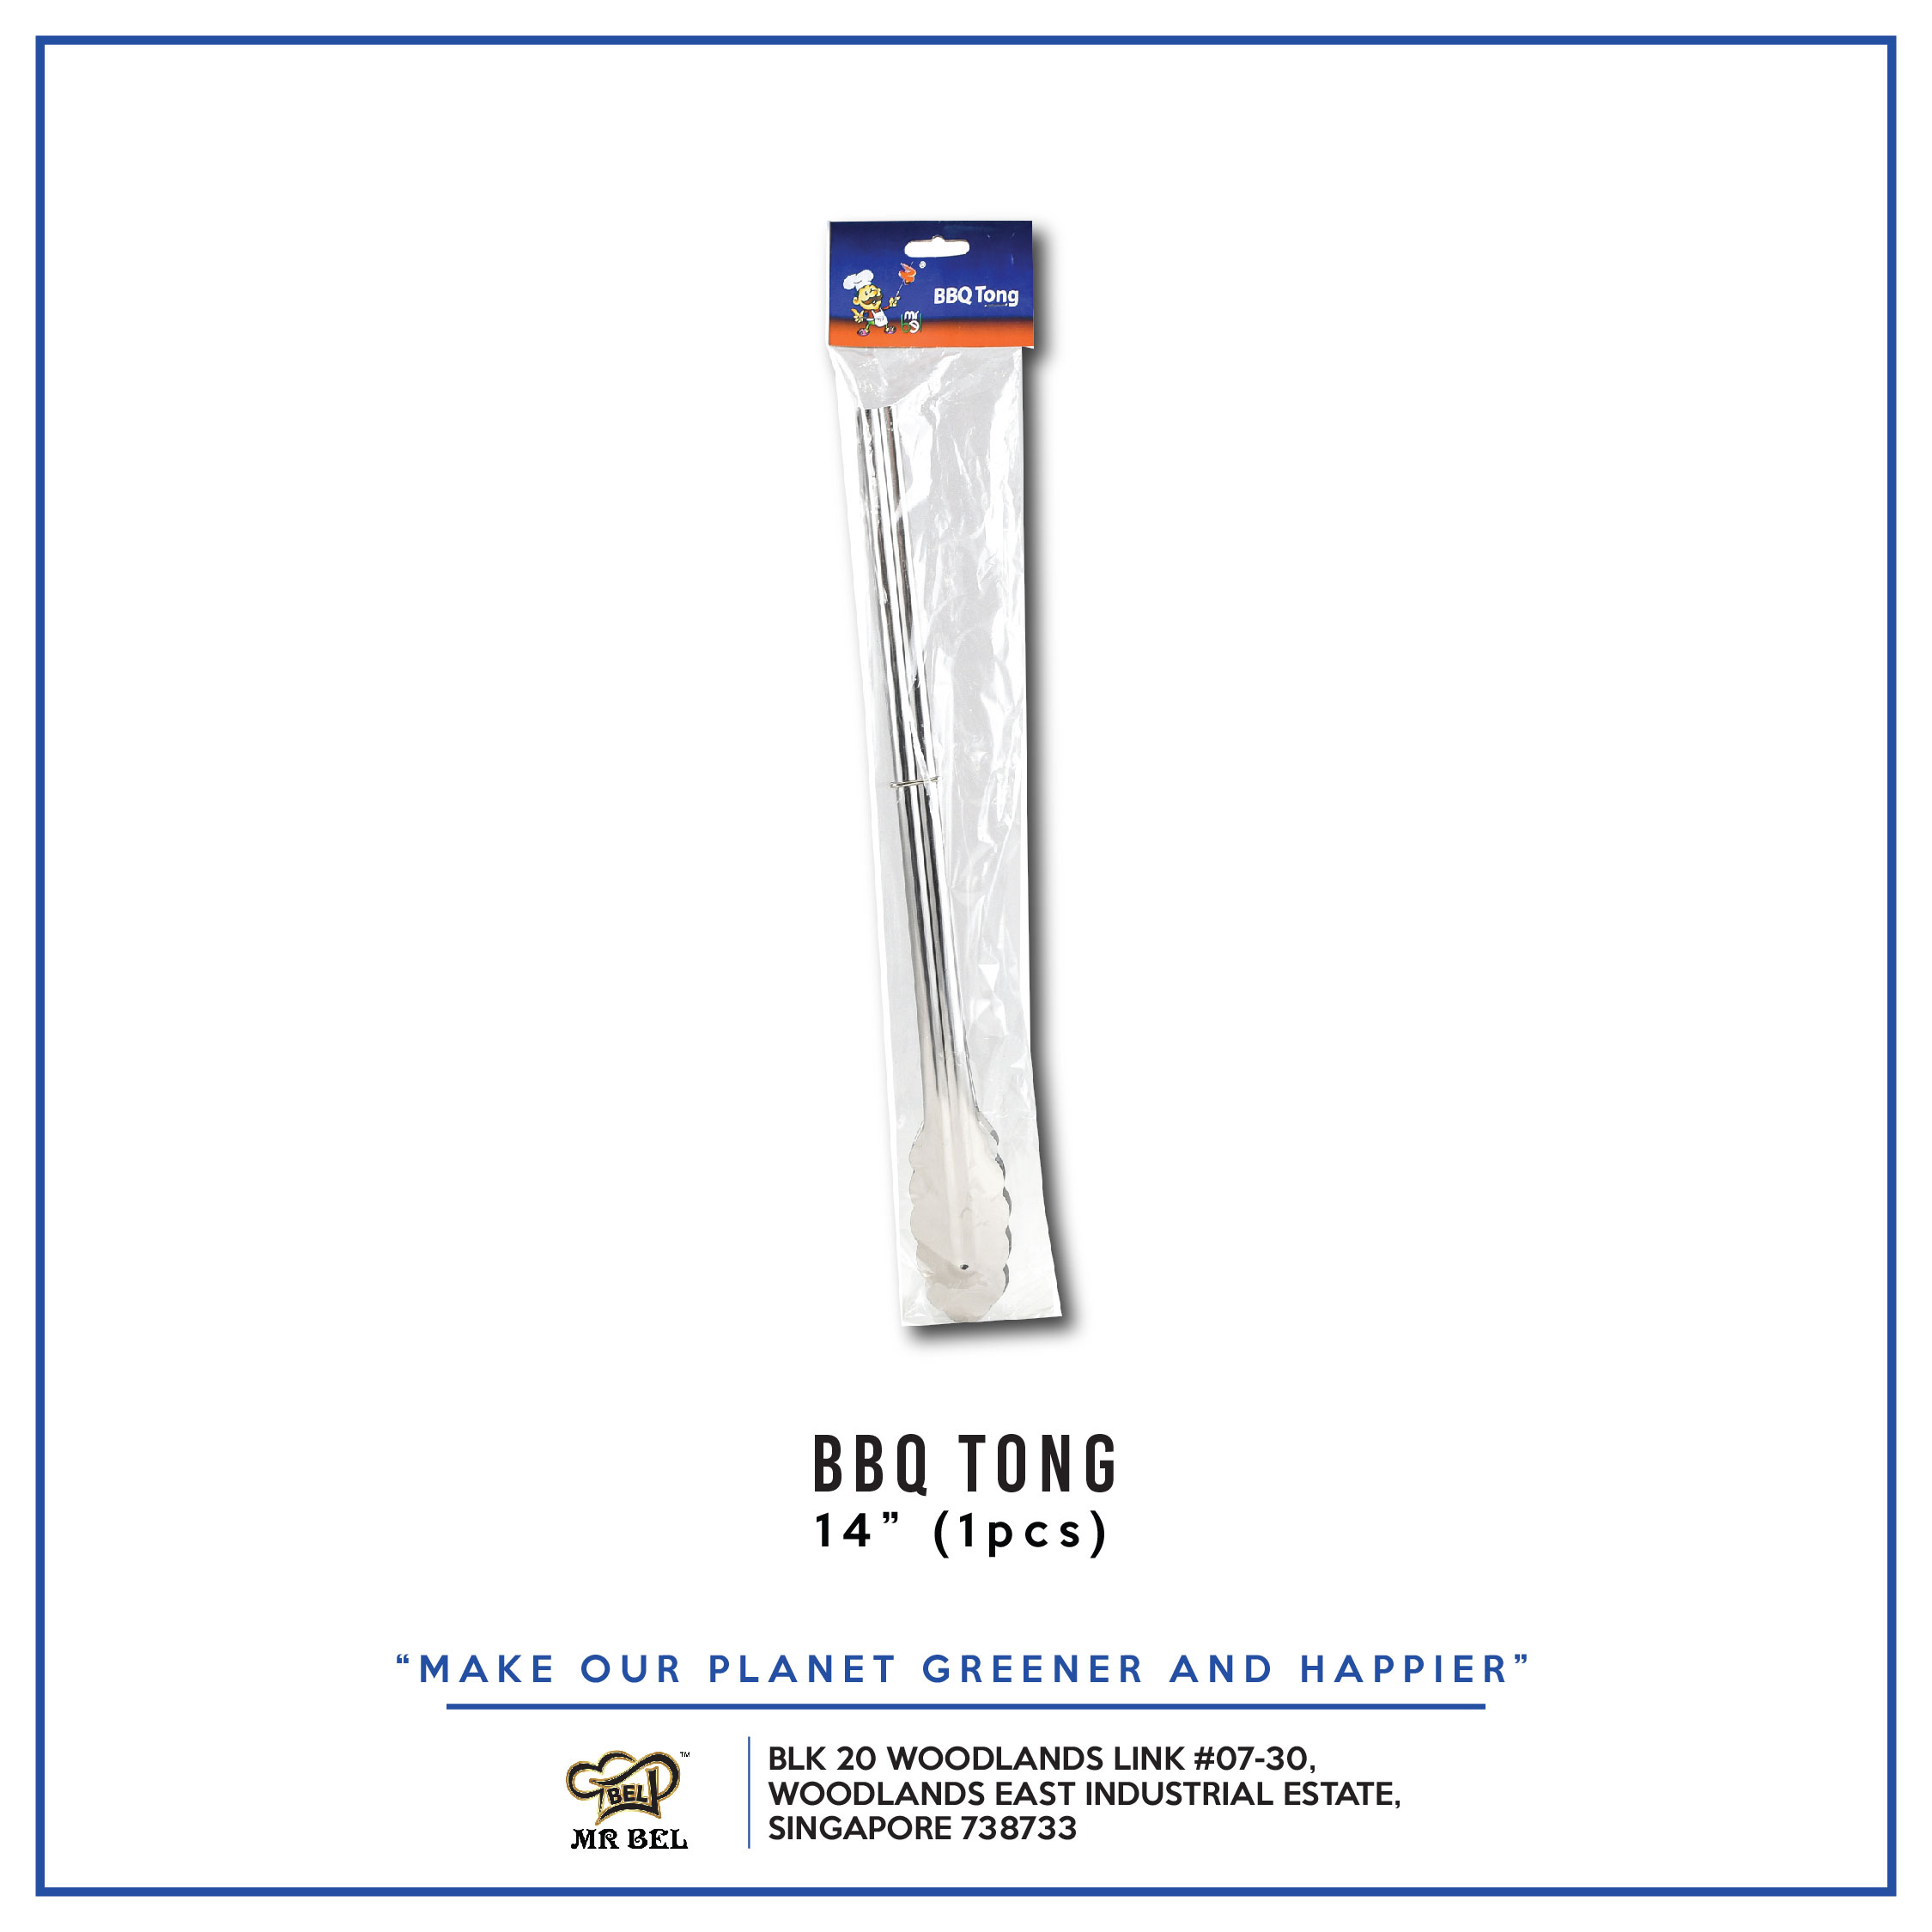 BBQ Tong 14  per pack - 1 Carton (24packs)